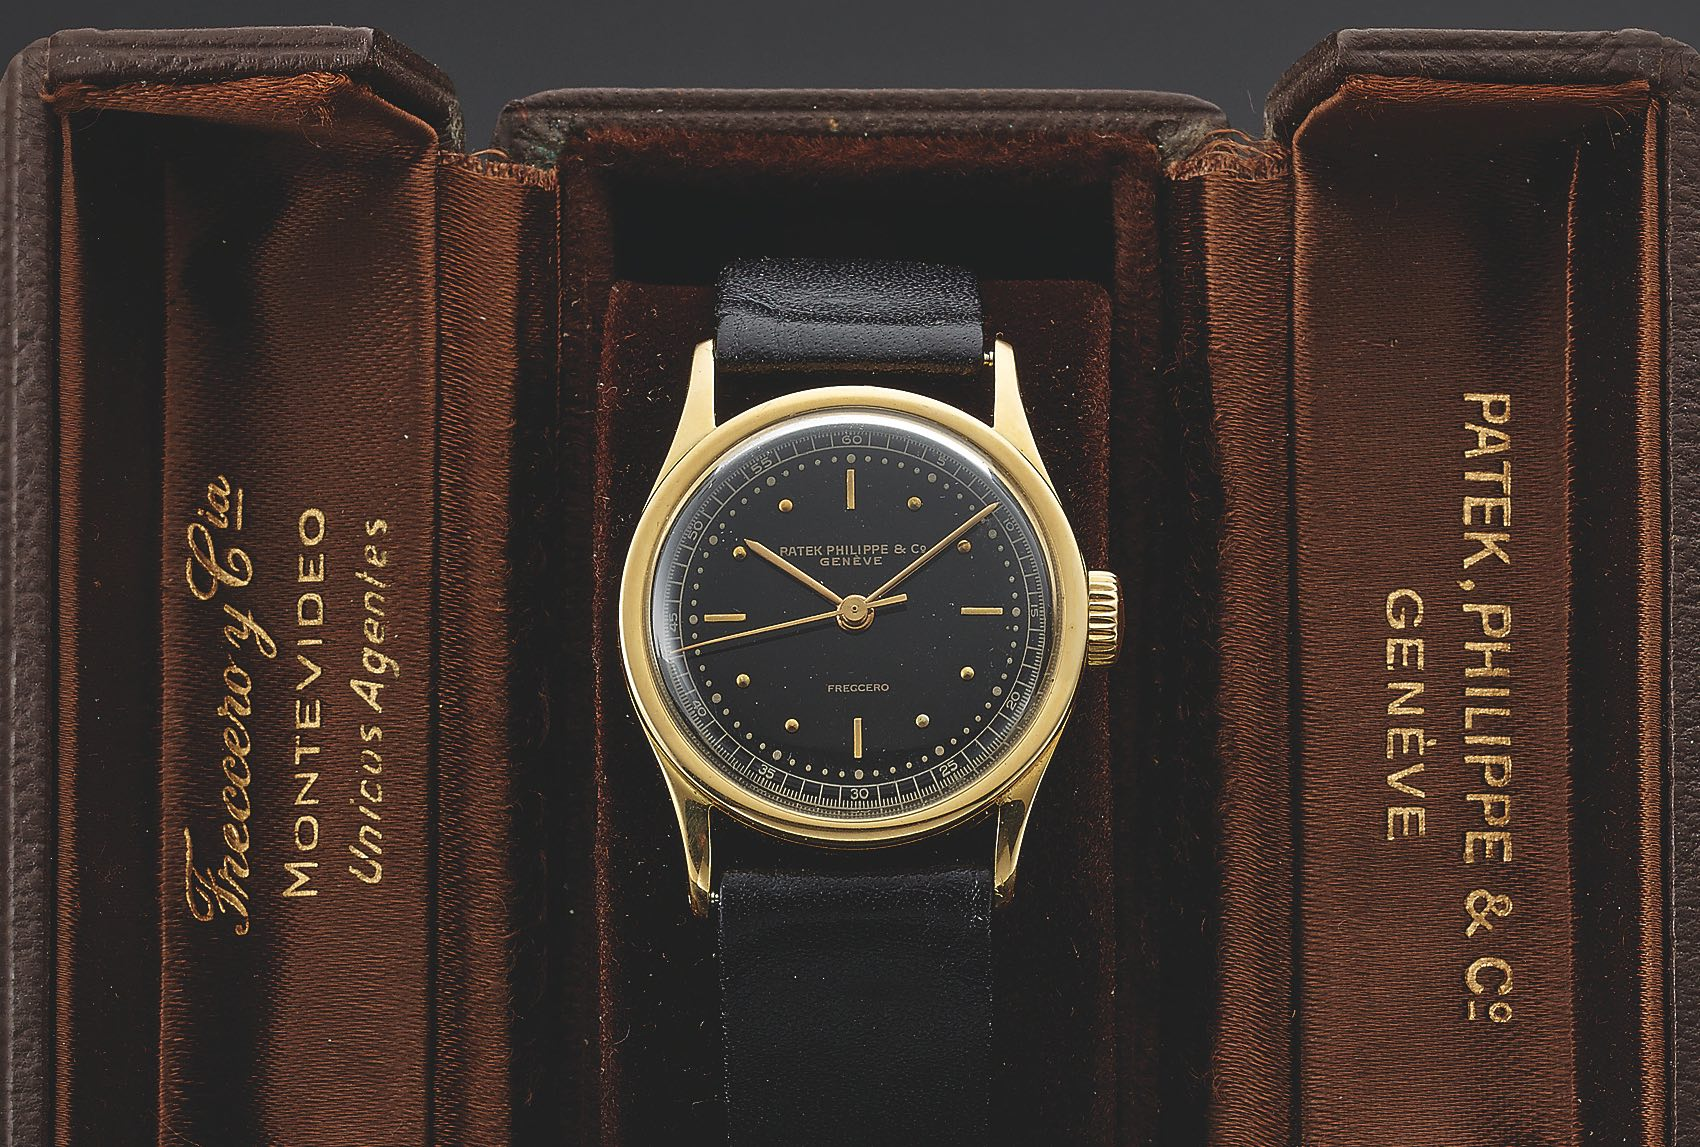 Patek Philippe Calatrava history - Reference 96 central second - source antiquorum